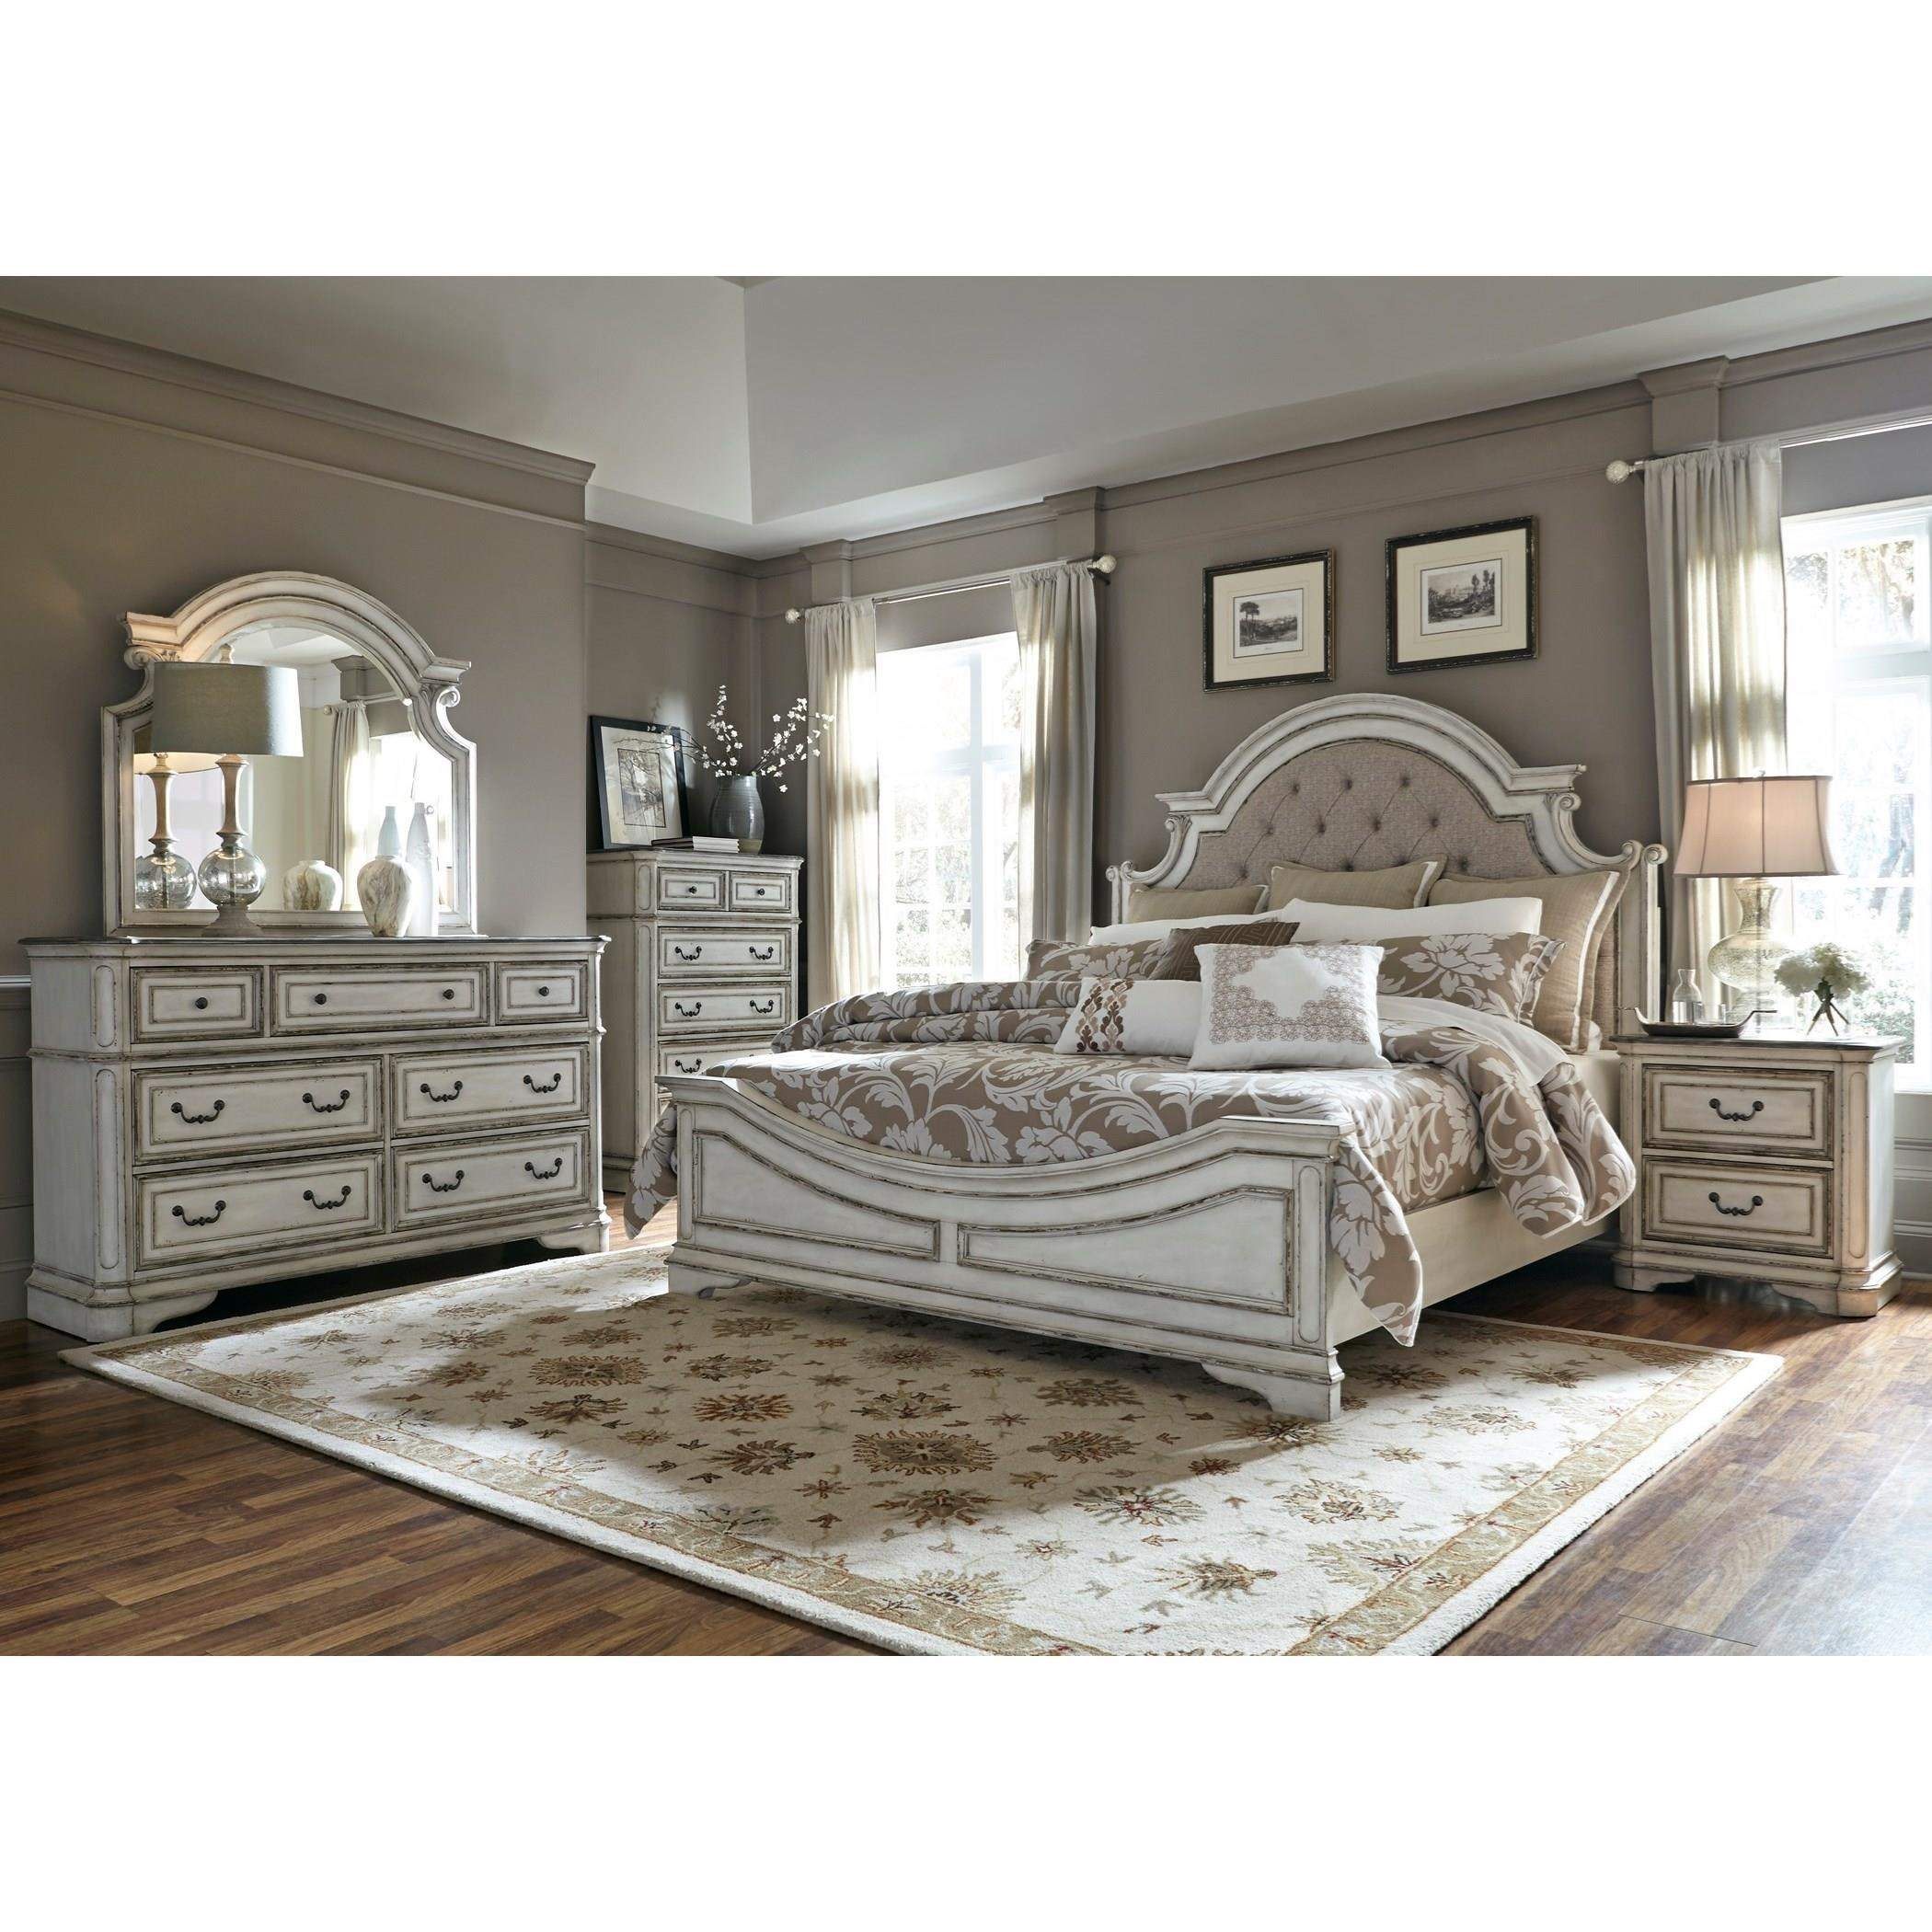 image great mirrored bedroom. Liberty Furniture Magnolia ManorKing Upholstered Bed, Dresser, Mirror \u0026 Nigh Image Great Mirrored Bedroom O